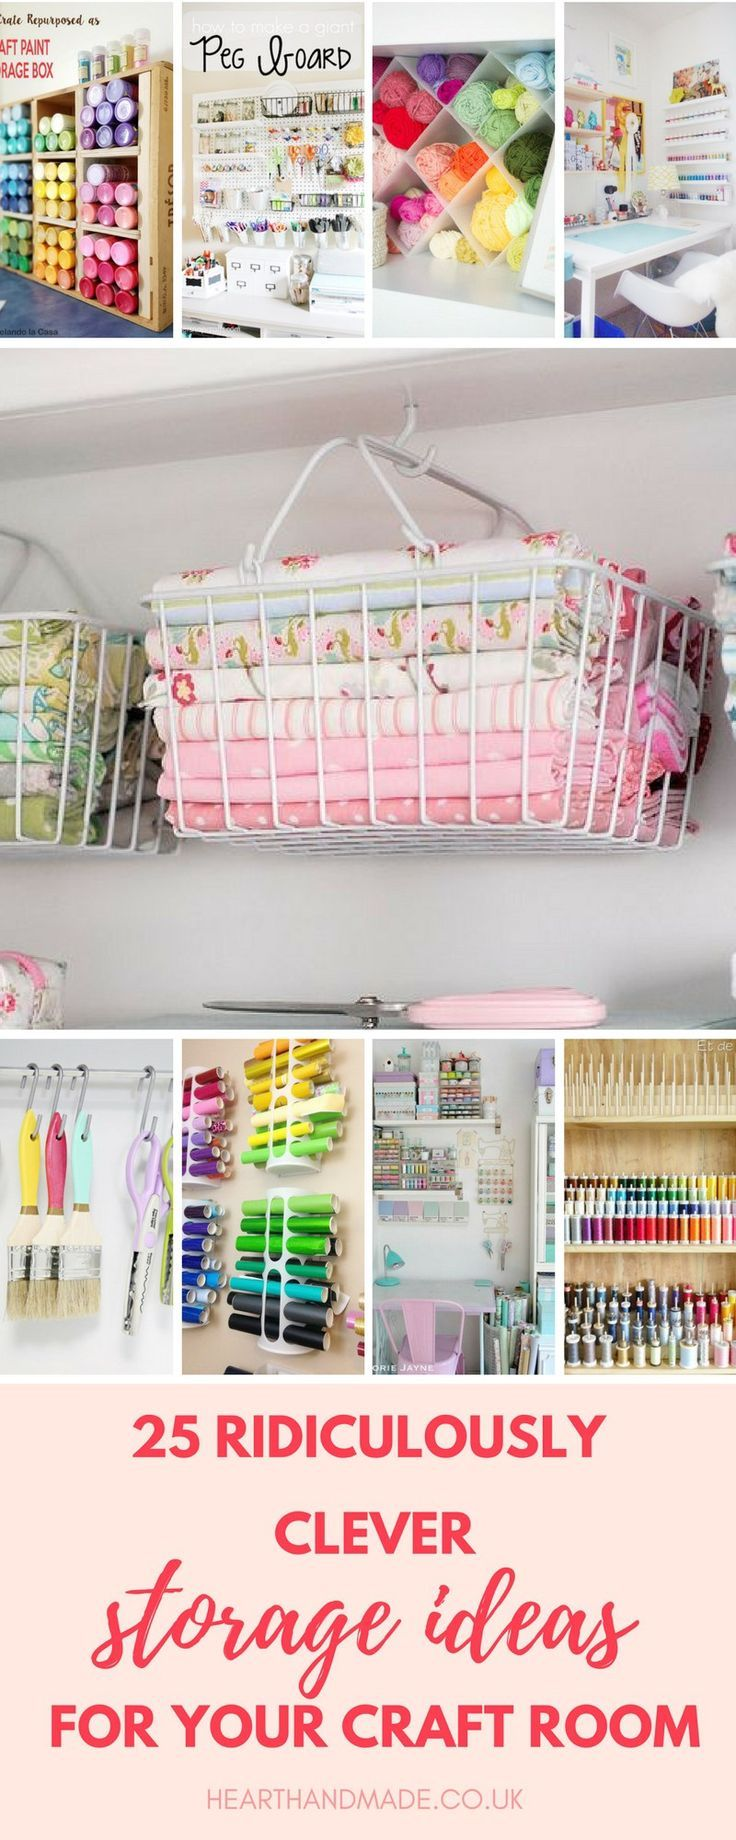 If youre in need of craft storage ideas for your craft room then this list is exactly what you need to read This post has small space craft storage ideas galore for utili...